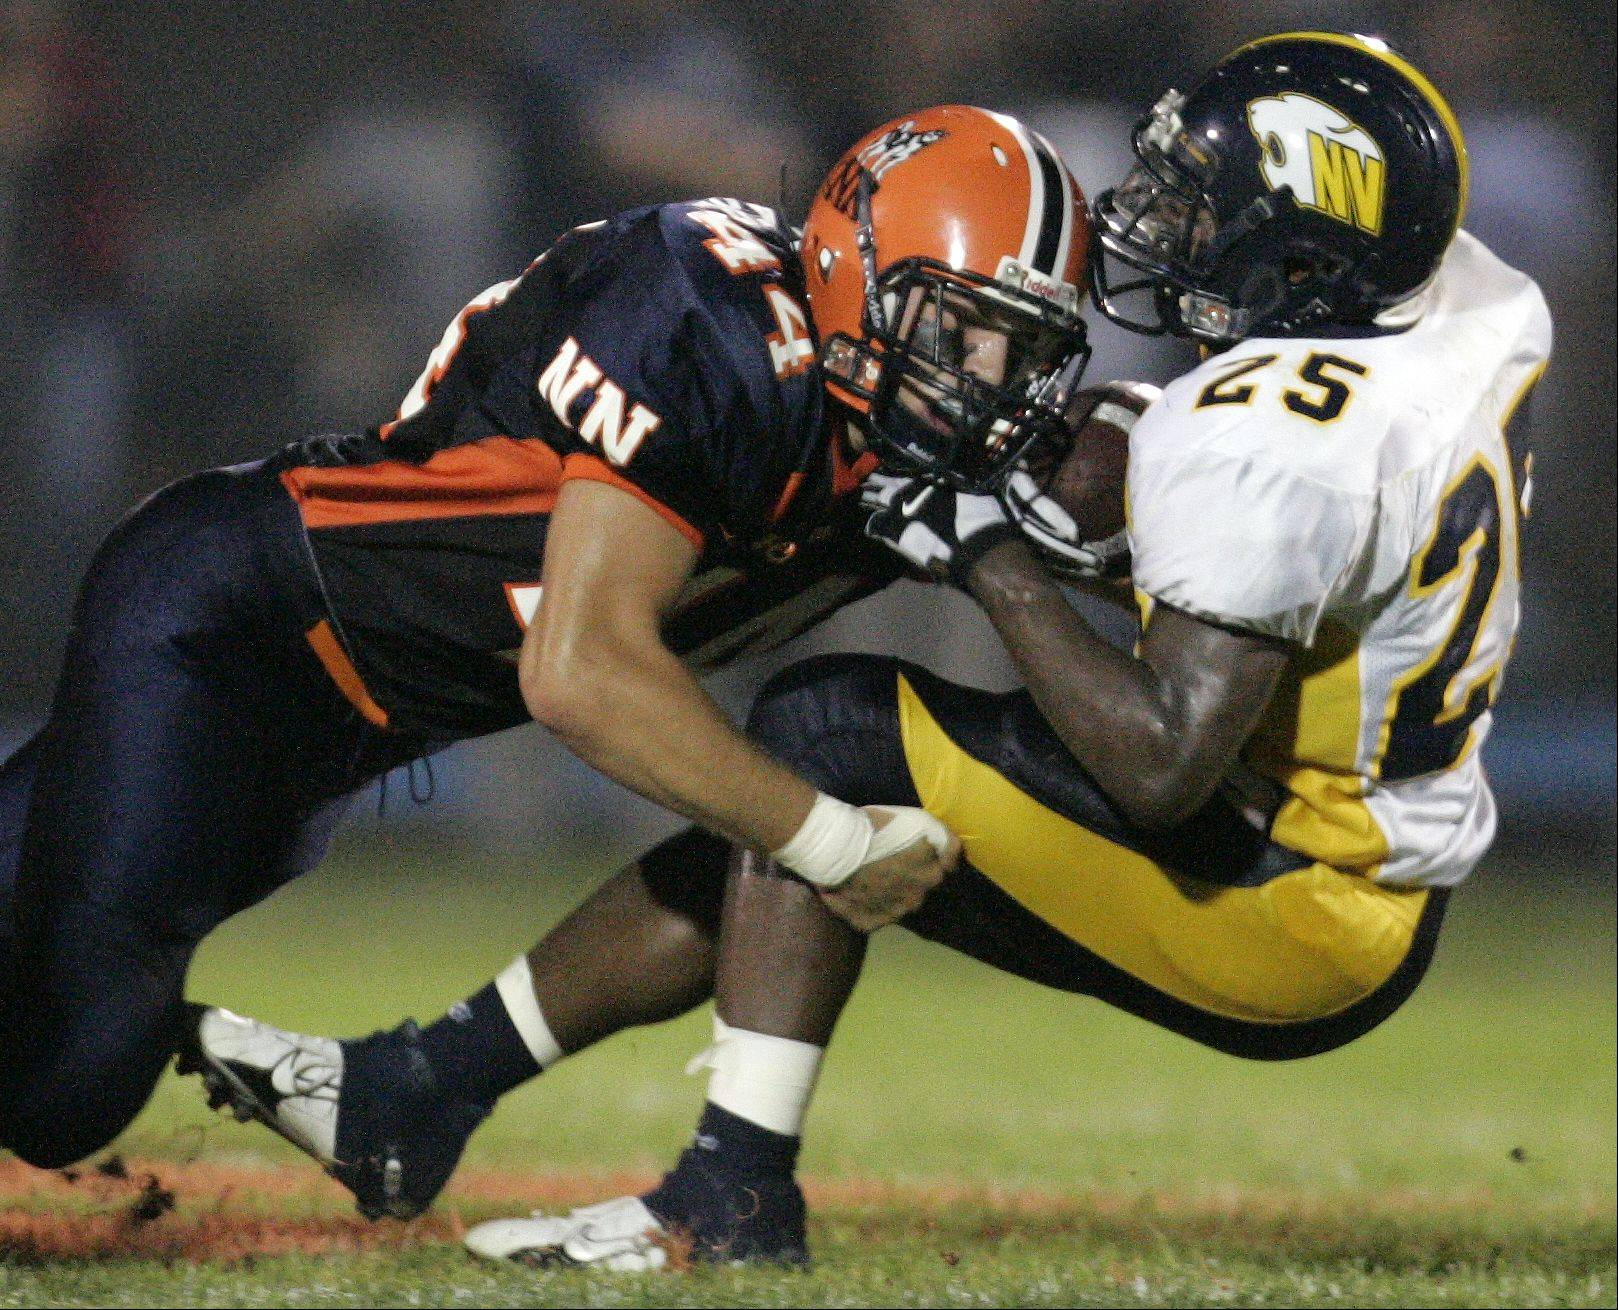 Could Neuqua Valley wind up in the same conference as Naperville North?